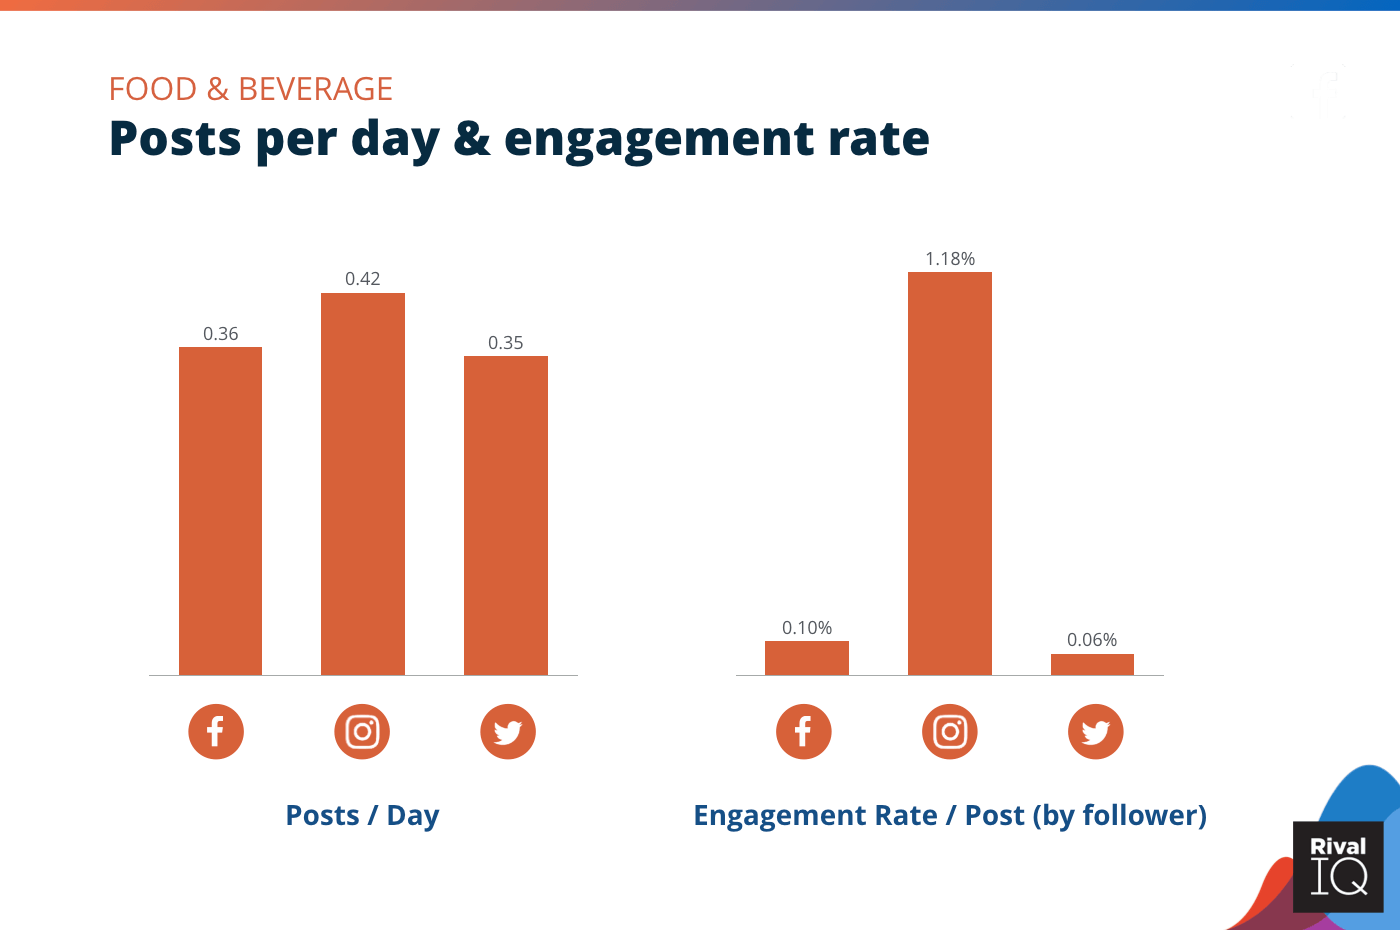 Chart of Posts per day and engagement rate per post across all channels, Food & Beverage